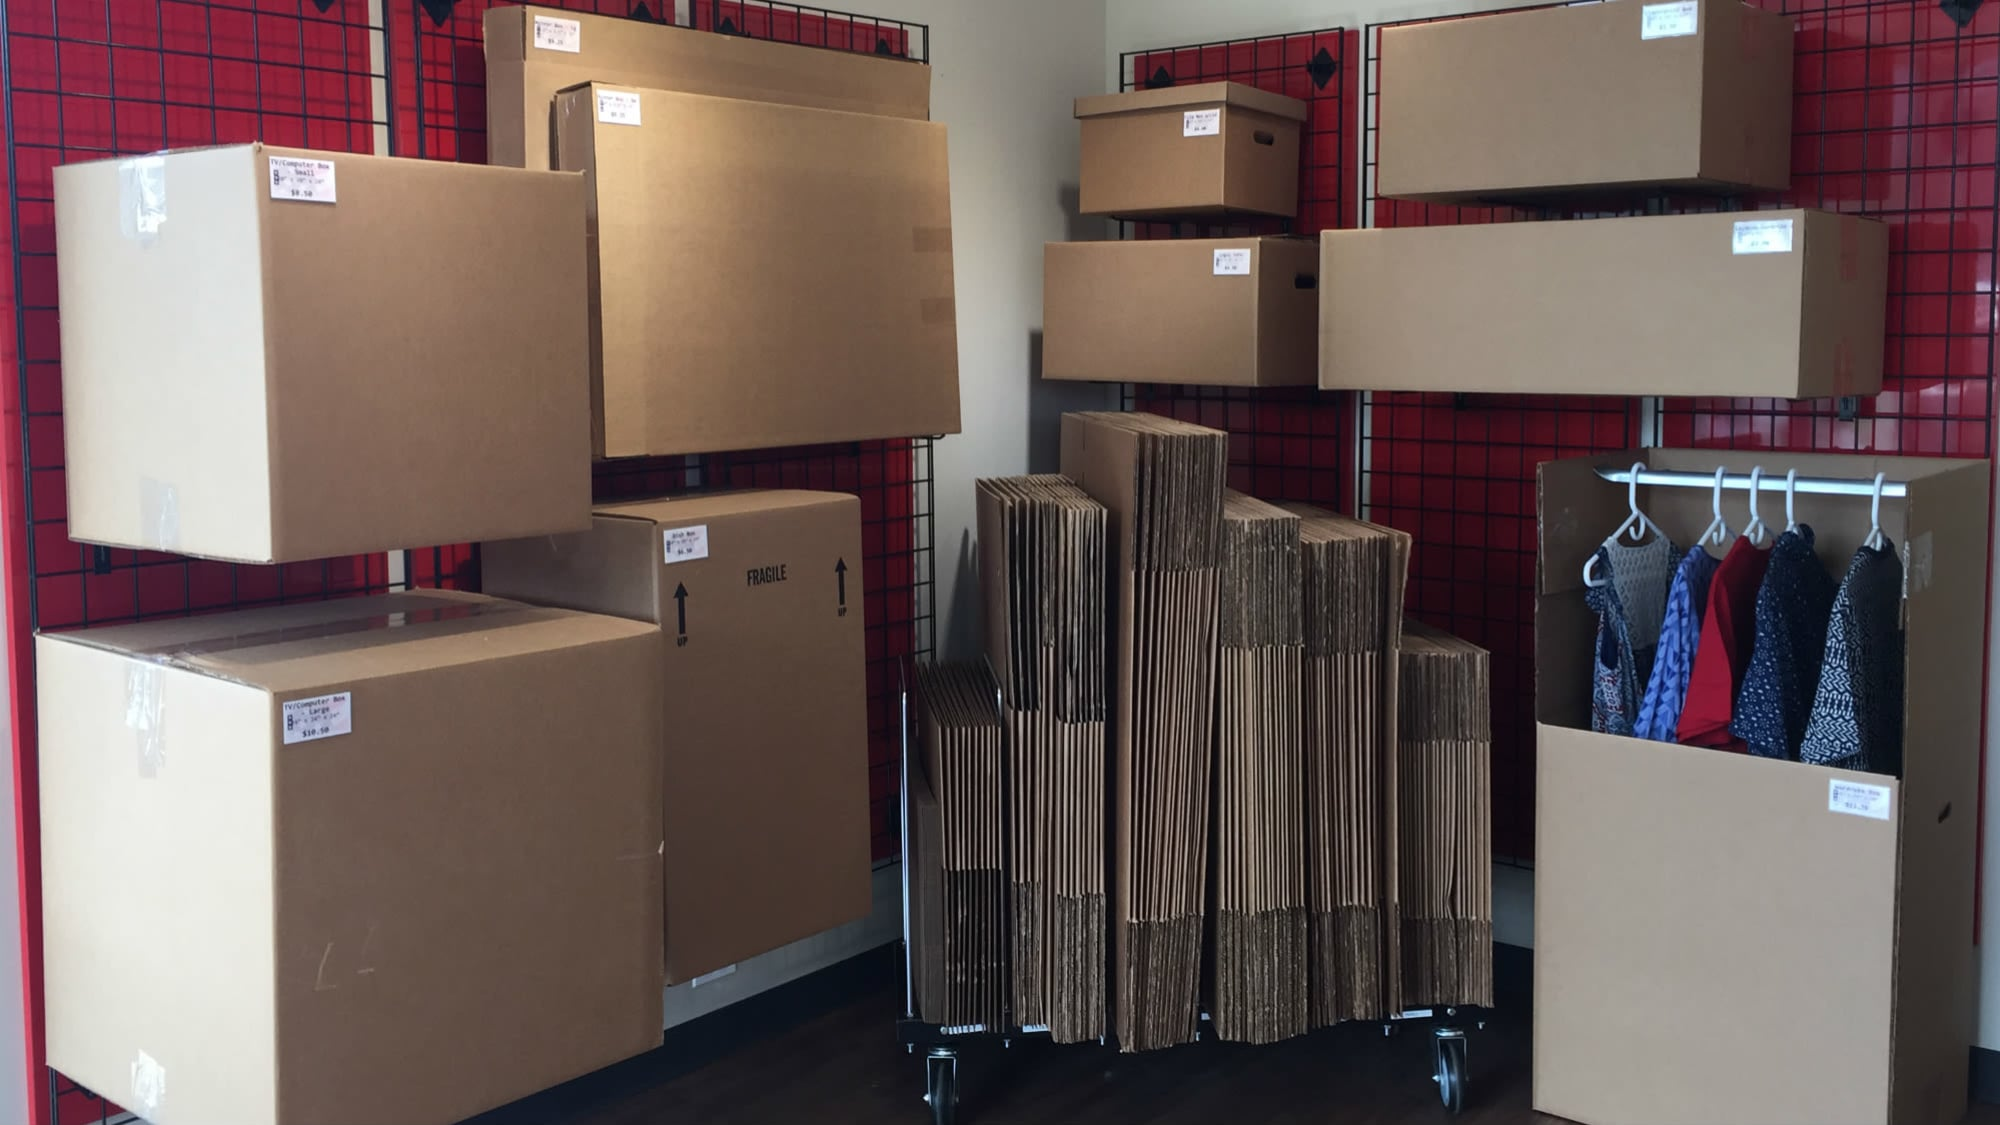 Self Storage Plus sells packing and moving supplies in Owings Mills